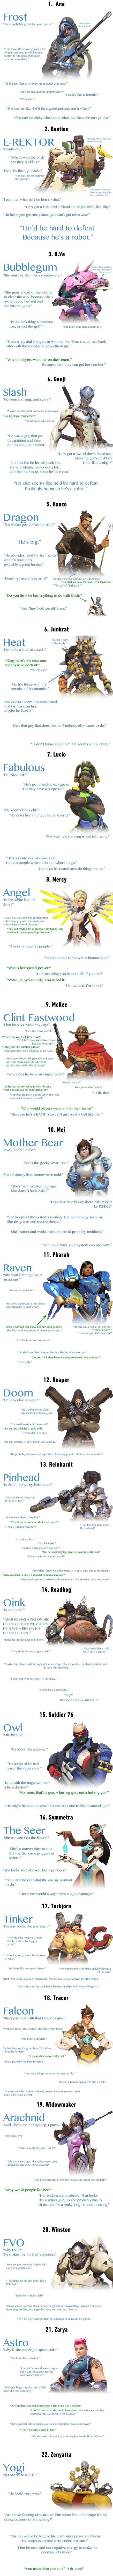 Overwatch Fan Asks Mom To Describe All The Heroes. Here's The Result - 9GAG